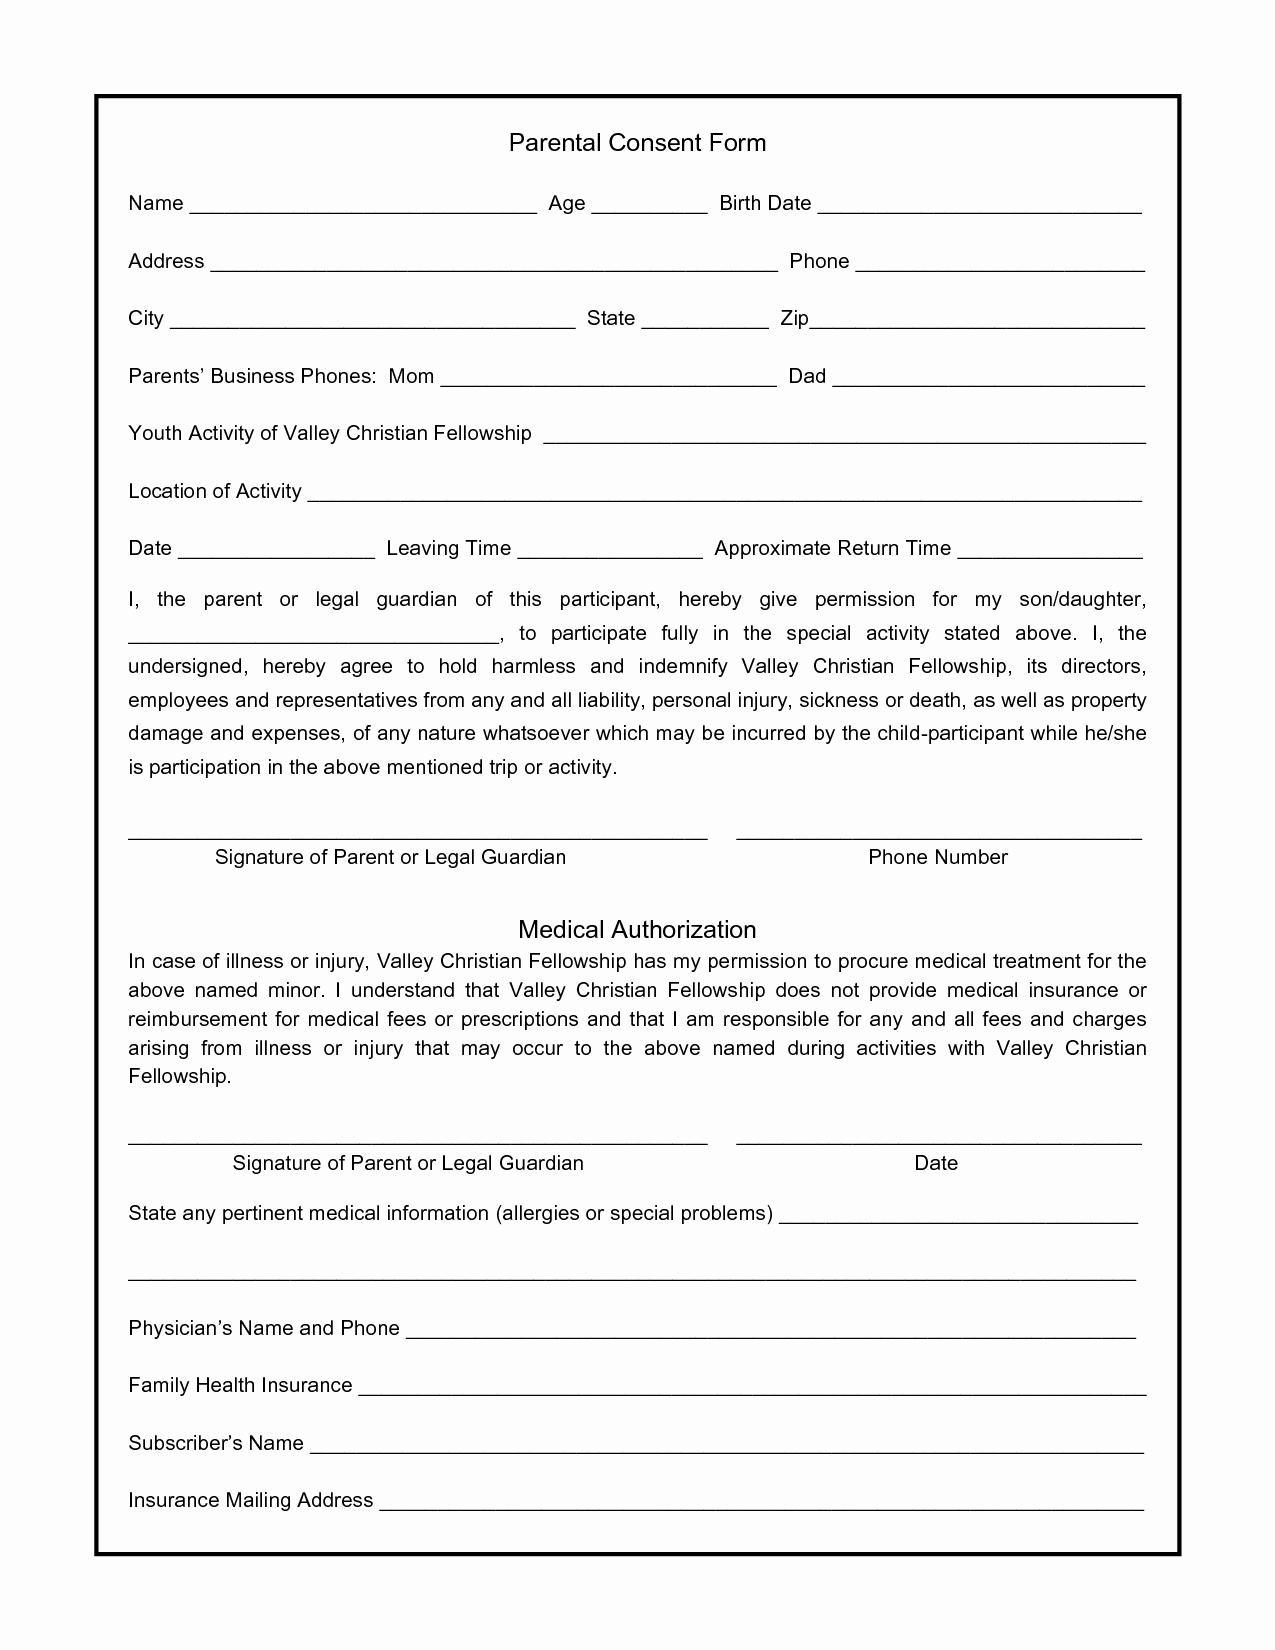 Parent Consent forms Template Awesome Parental Consent form for S Swifter Parental